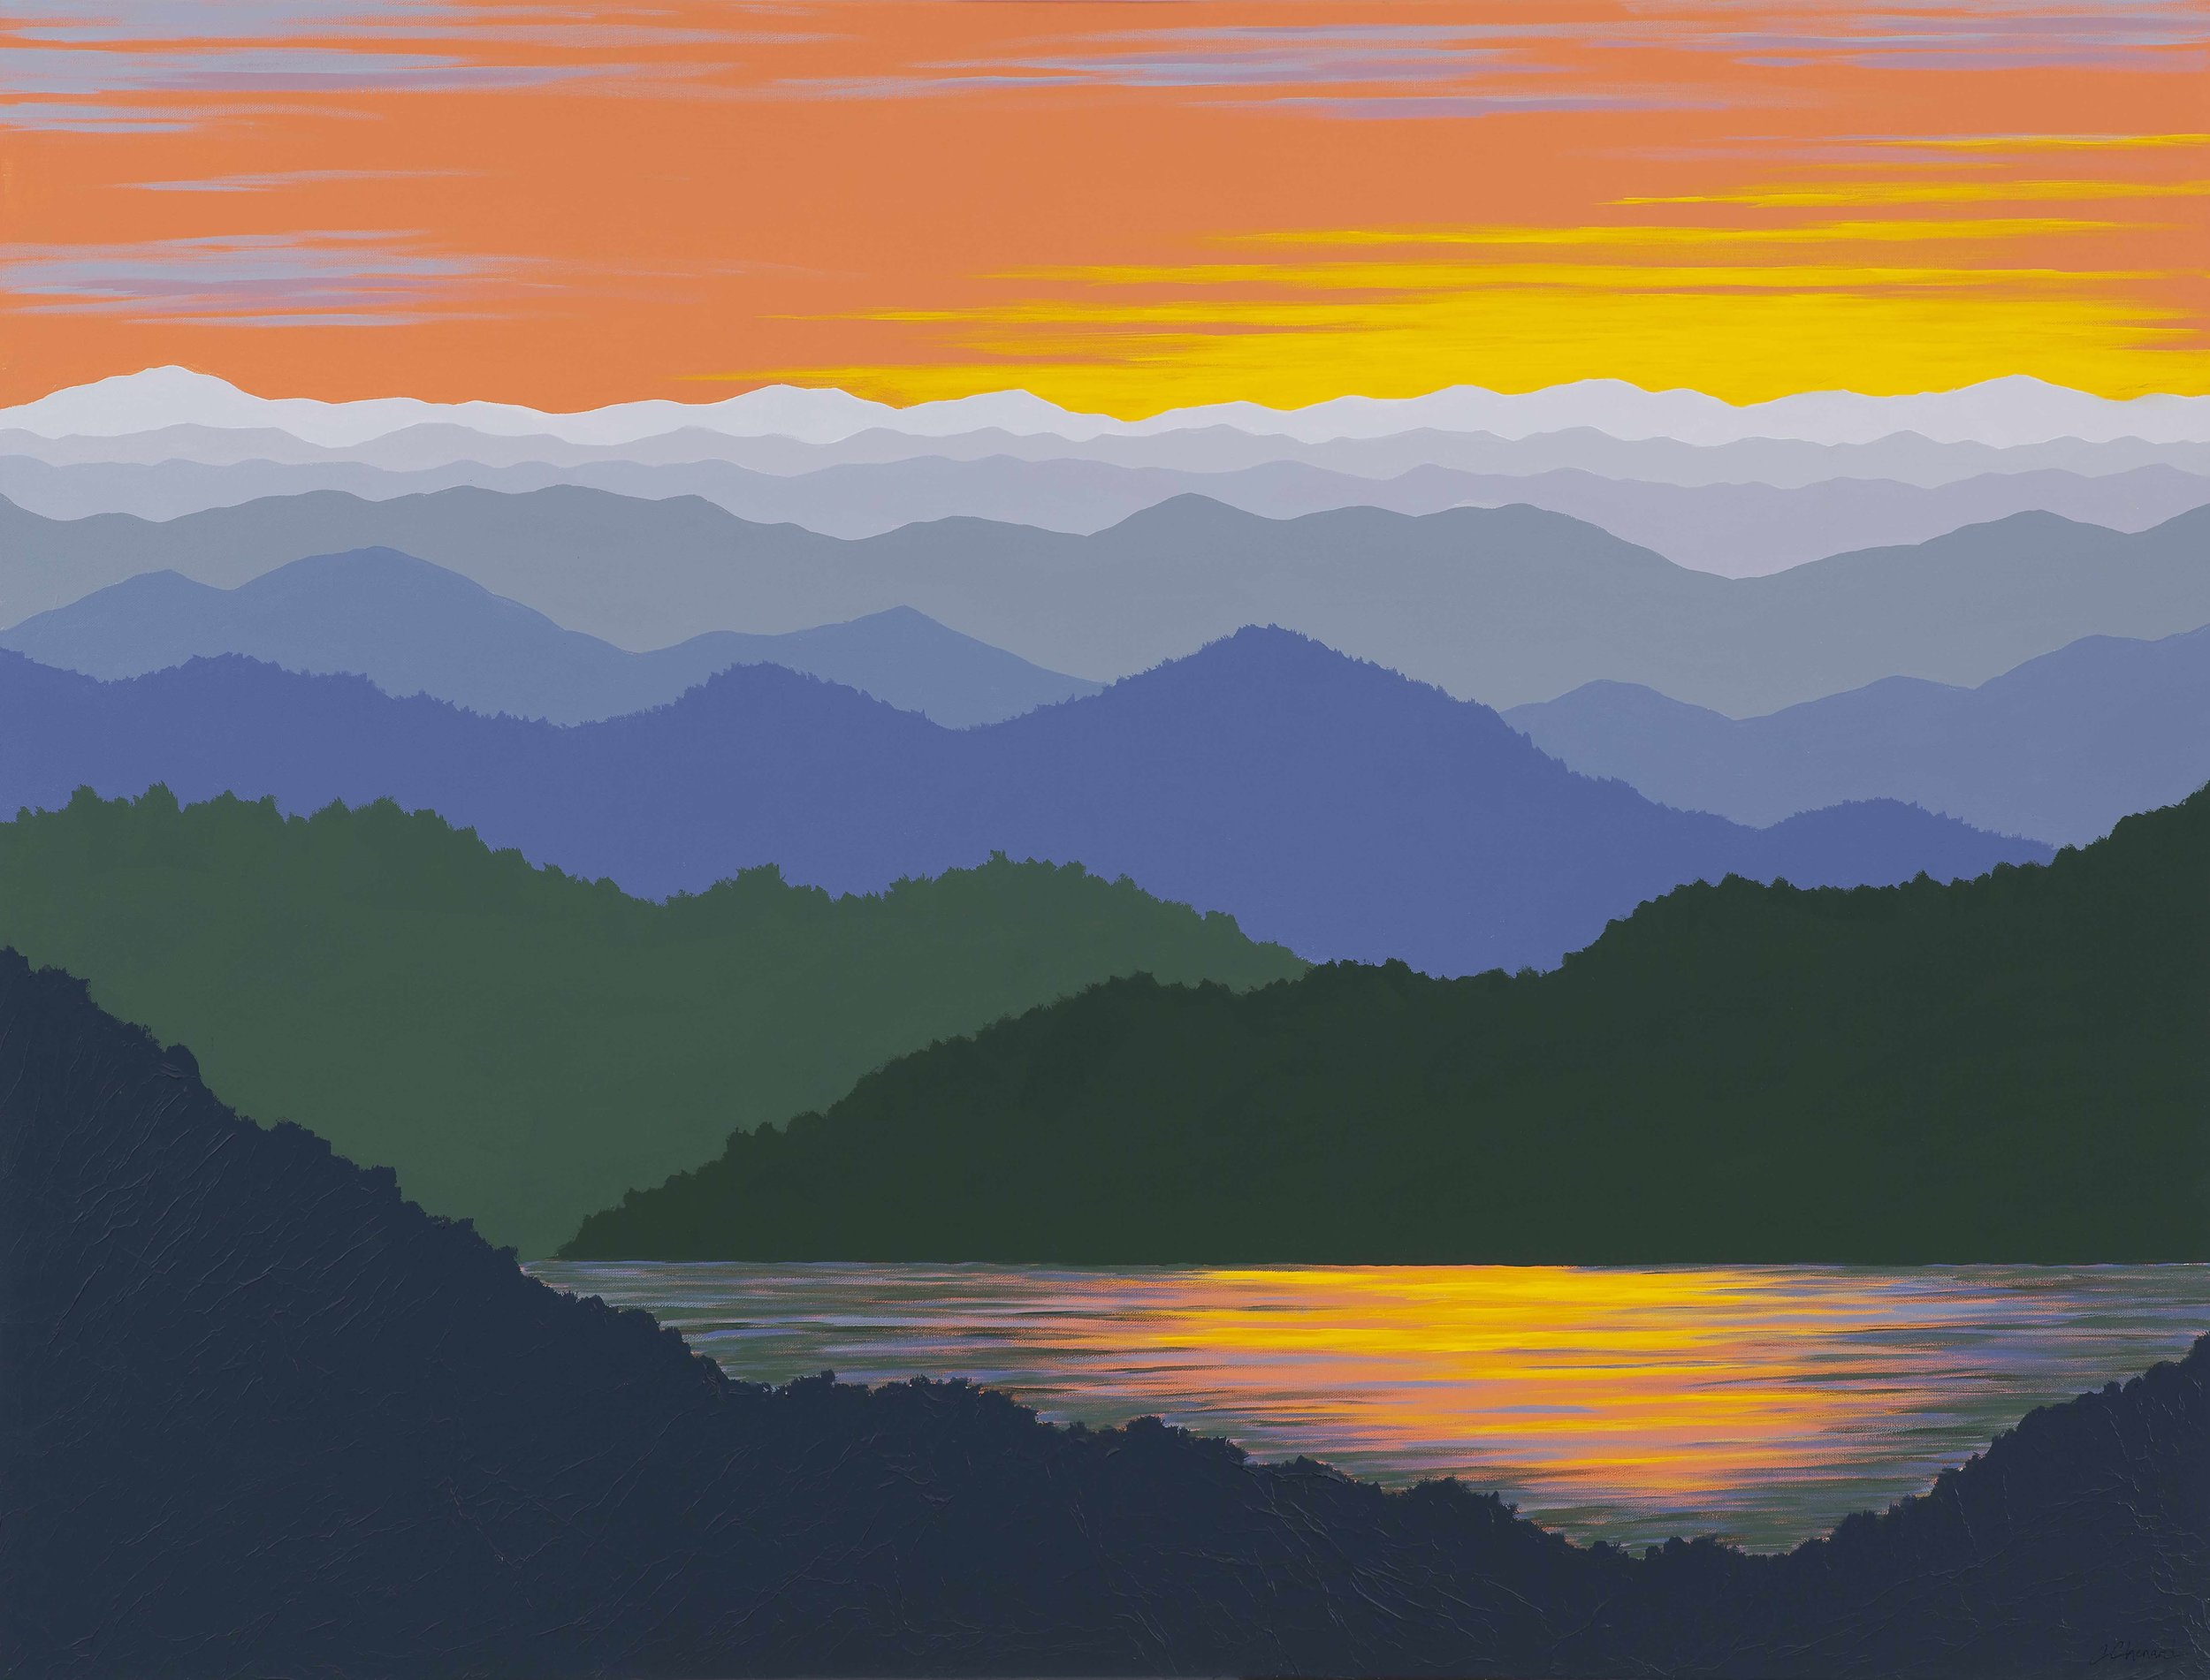 """MOUNTAIN SUNSET REFLECTIONS"",  Acrylic on Canvas in black frame, 48x36 inches, $1800."